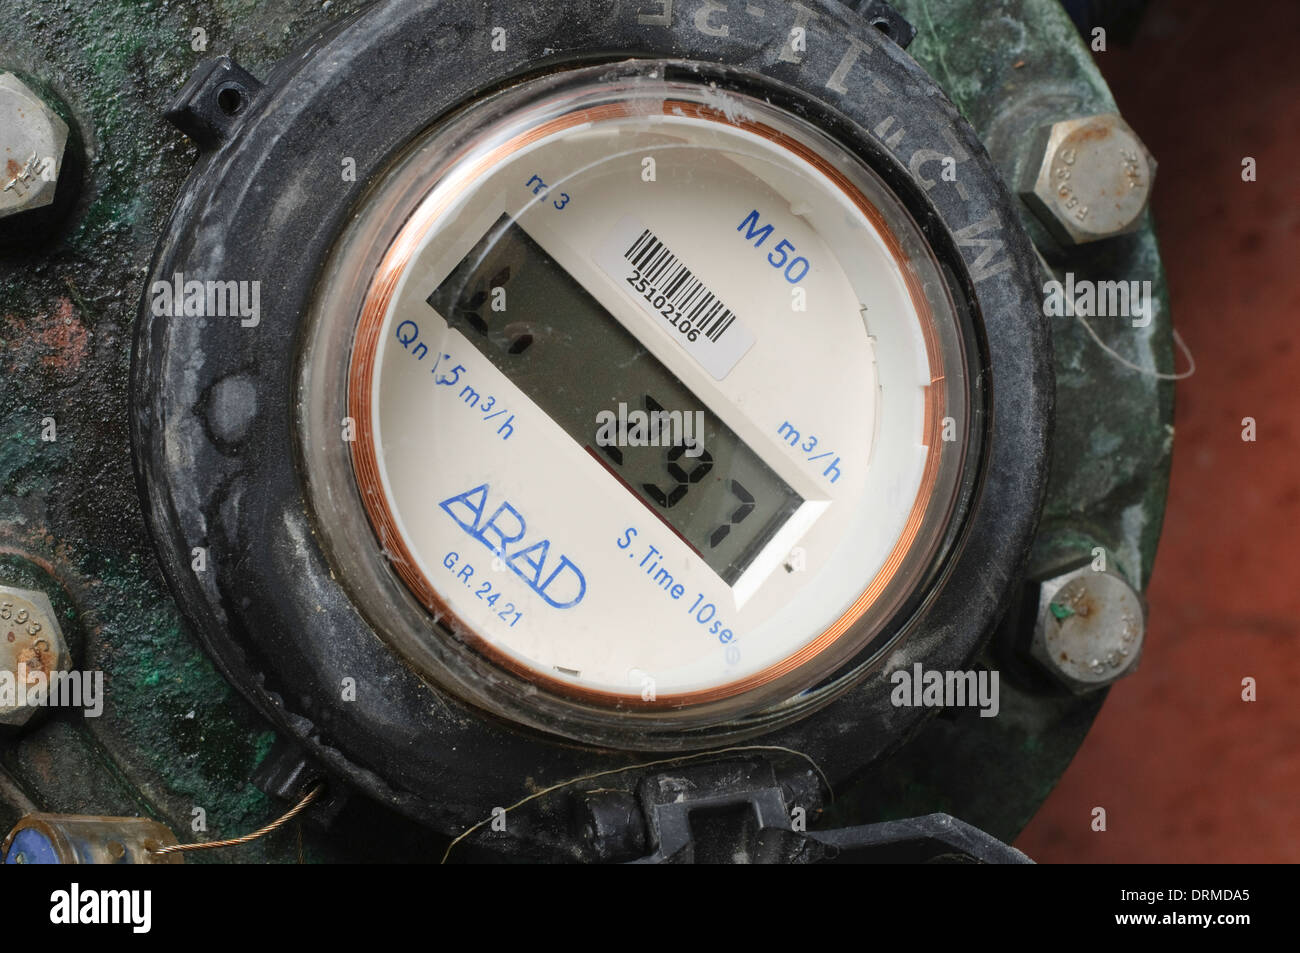 Water flow meter with digital display measures the hourly flow of the water in cubic metres - Stock Image